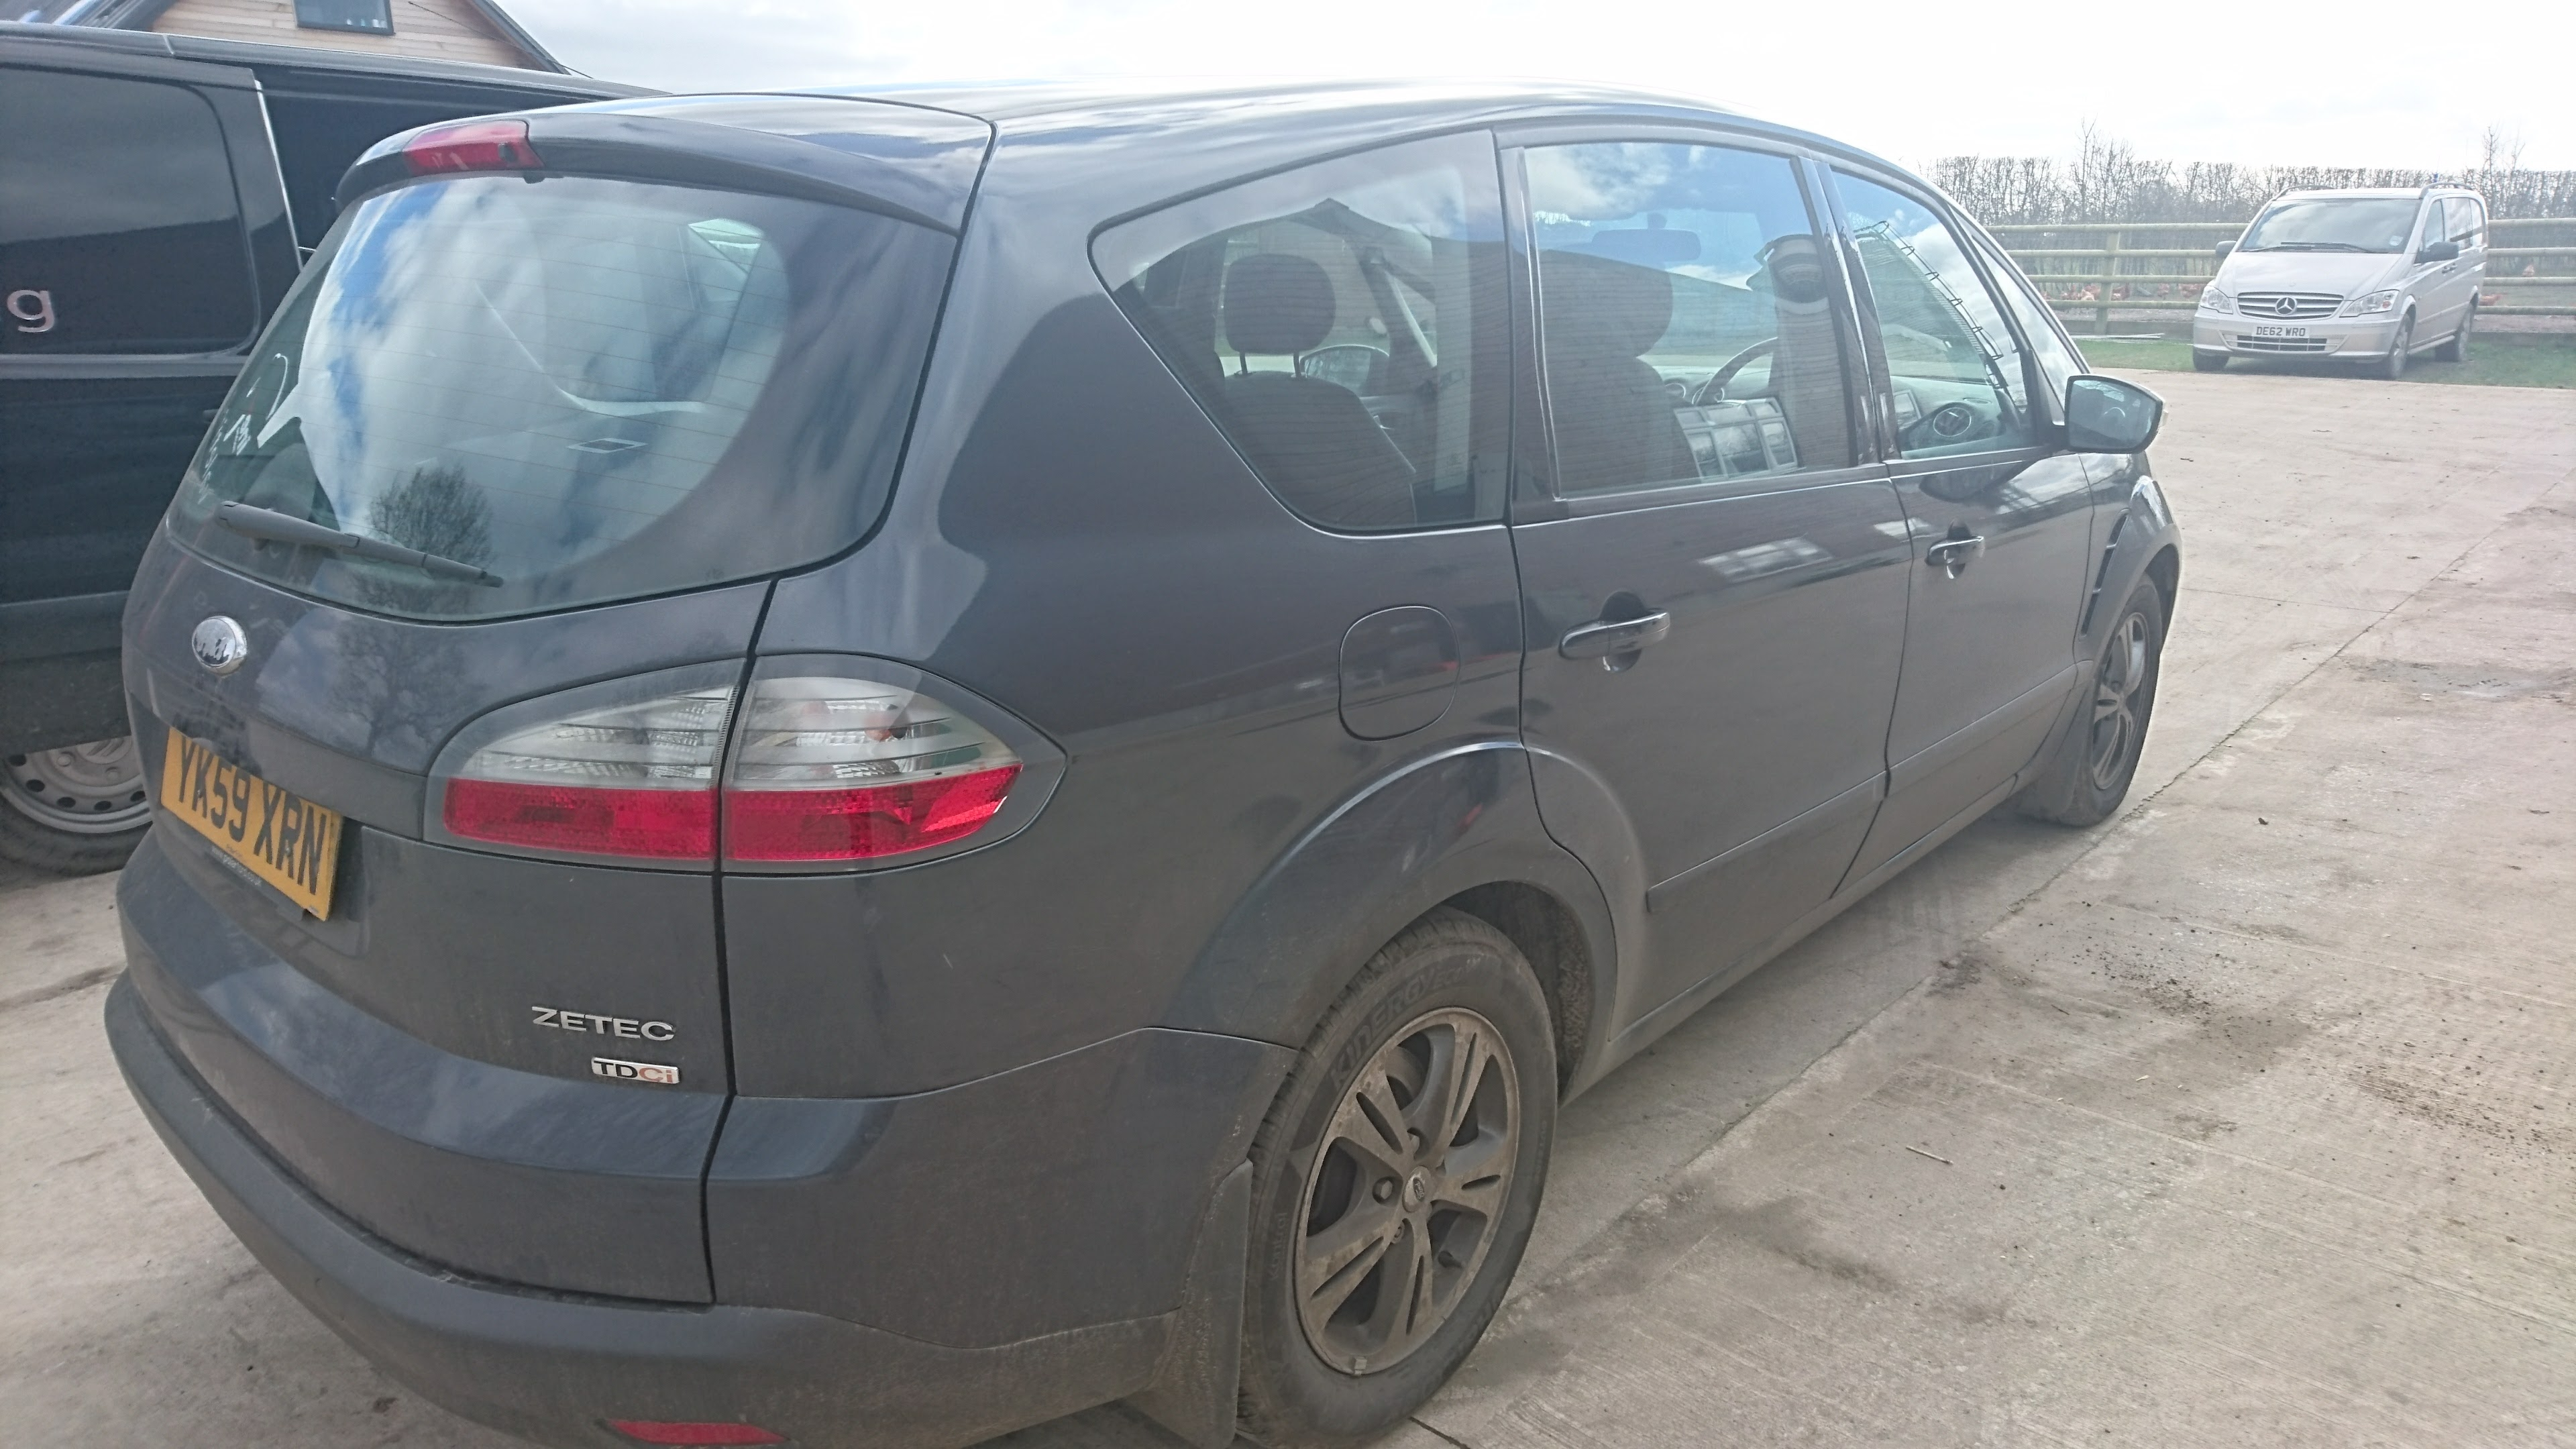 Before picture of Ford S Max from rear side